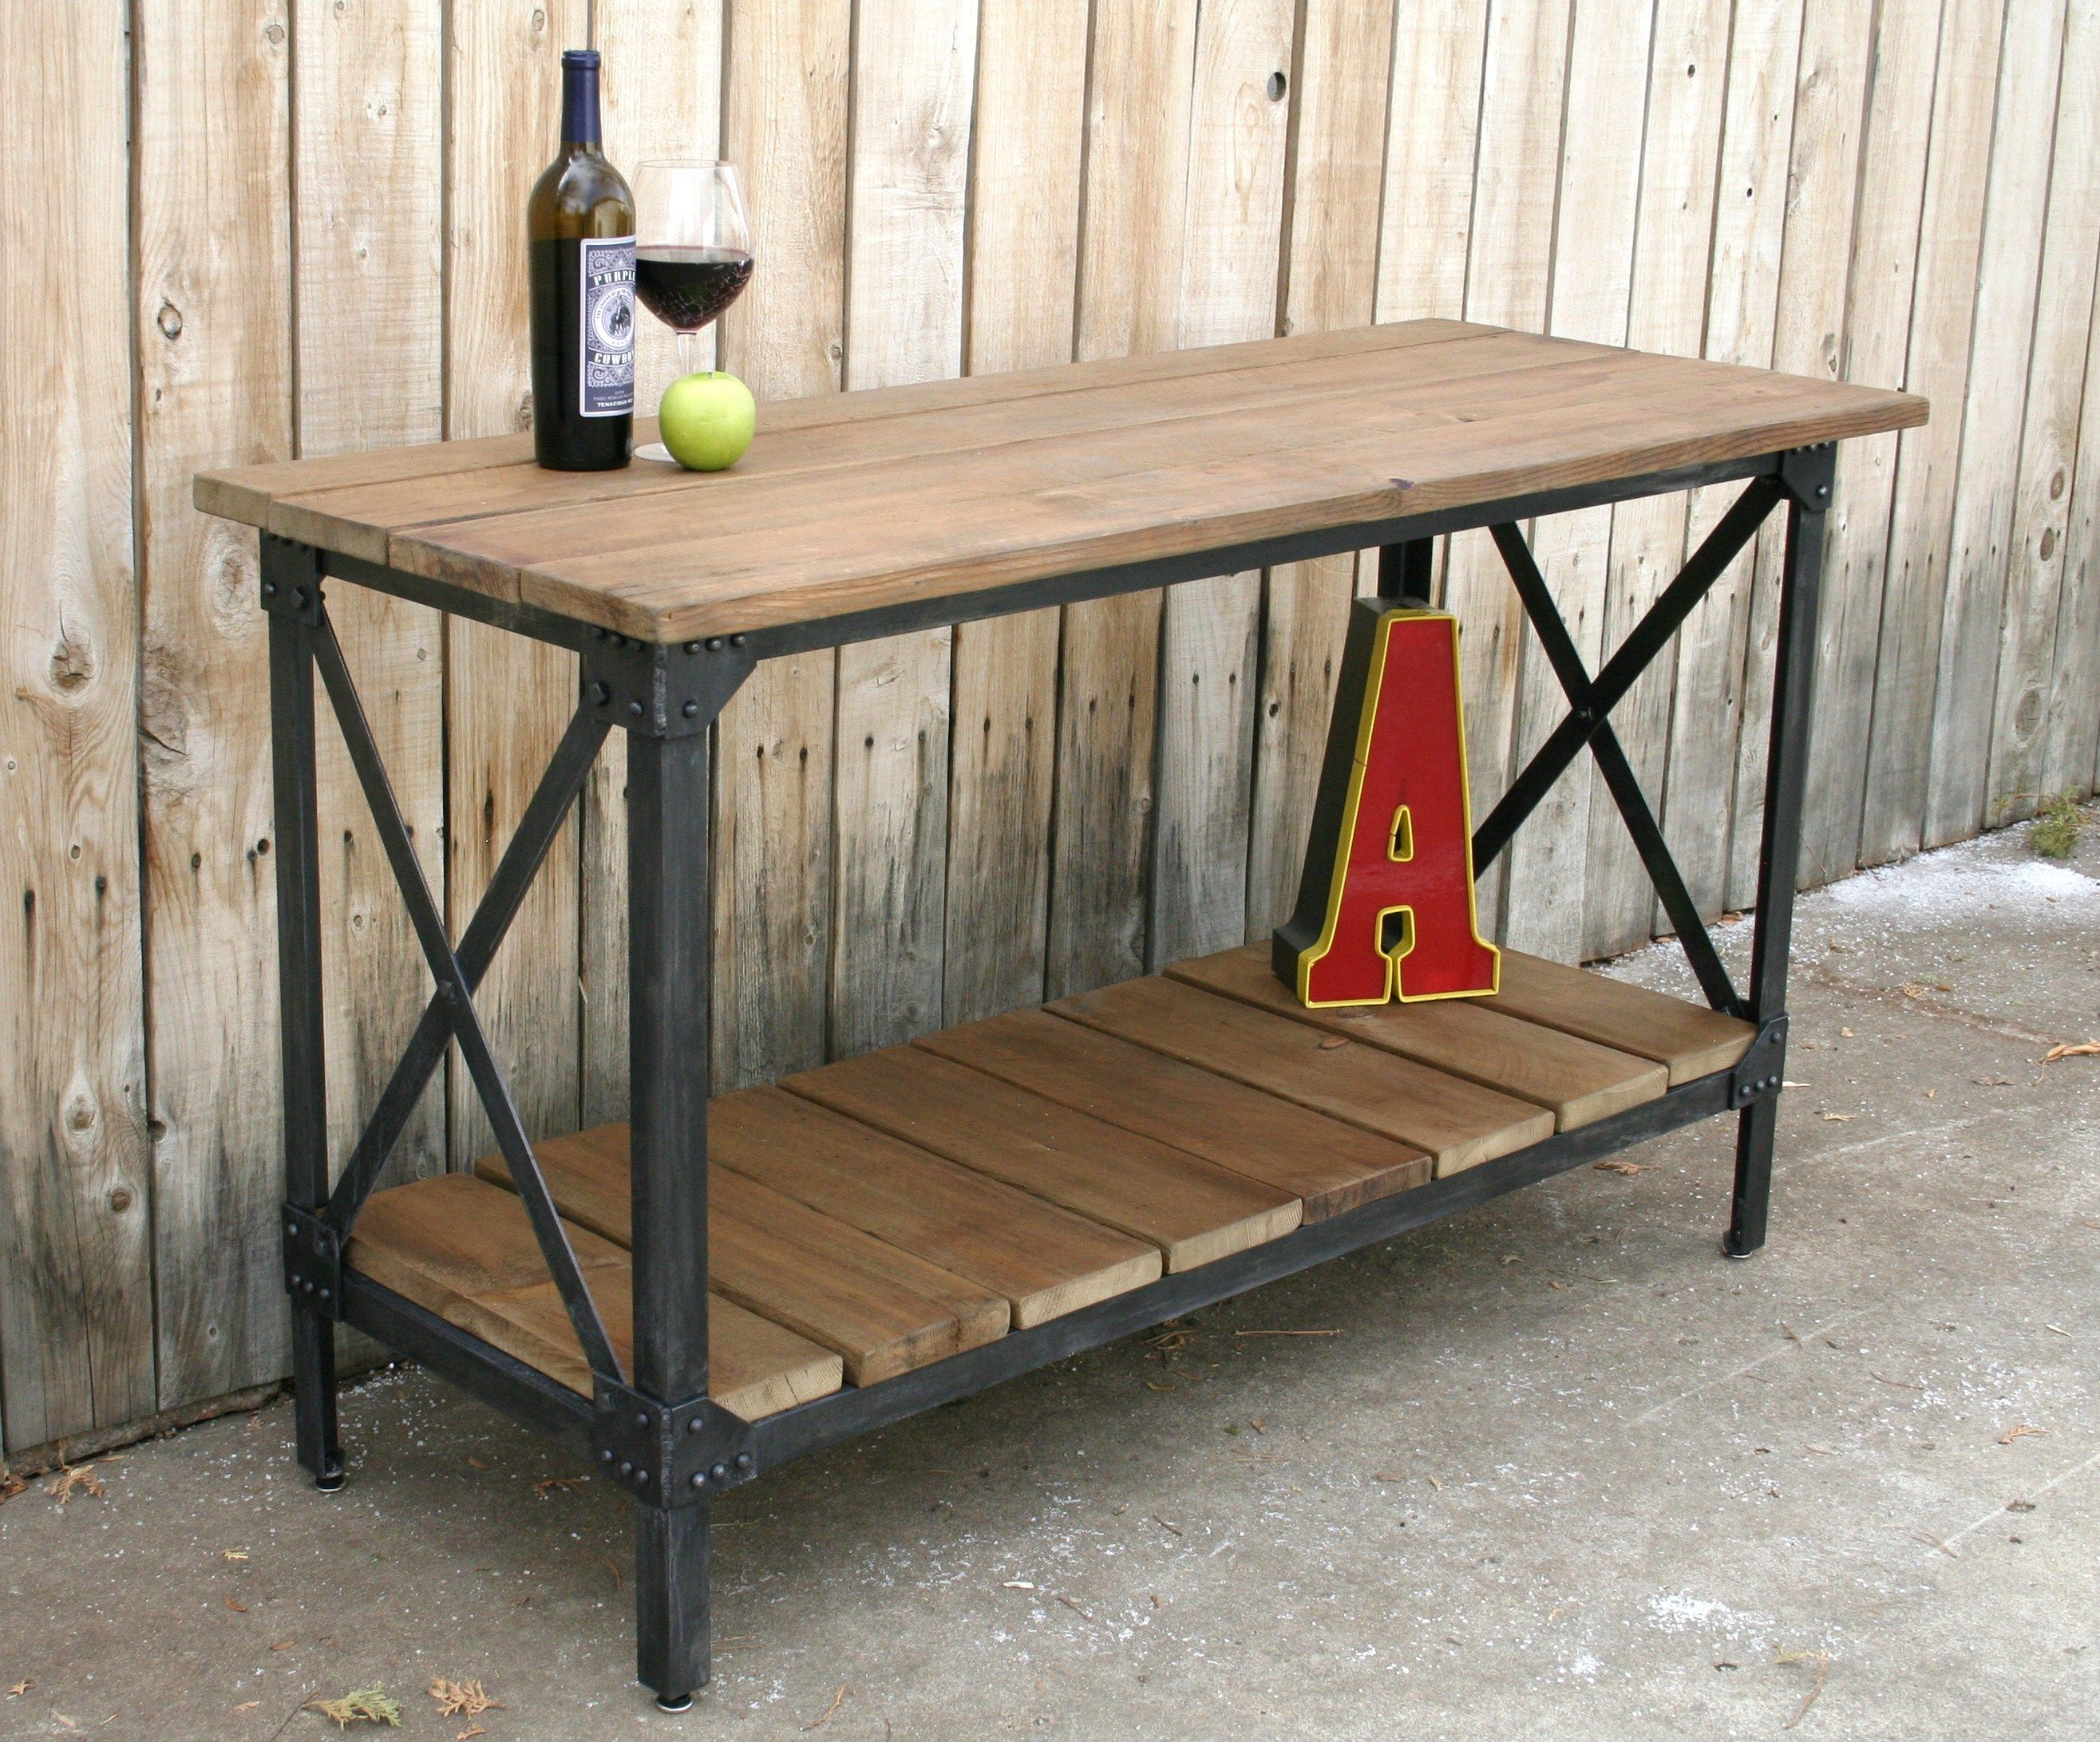 Attractive Wood And Metal Console Part - 11: Wood U0026 Metal Industrial Rustic Console Table, Accent Table, Liquor Cart,  Kitchen Island